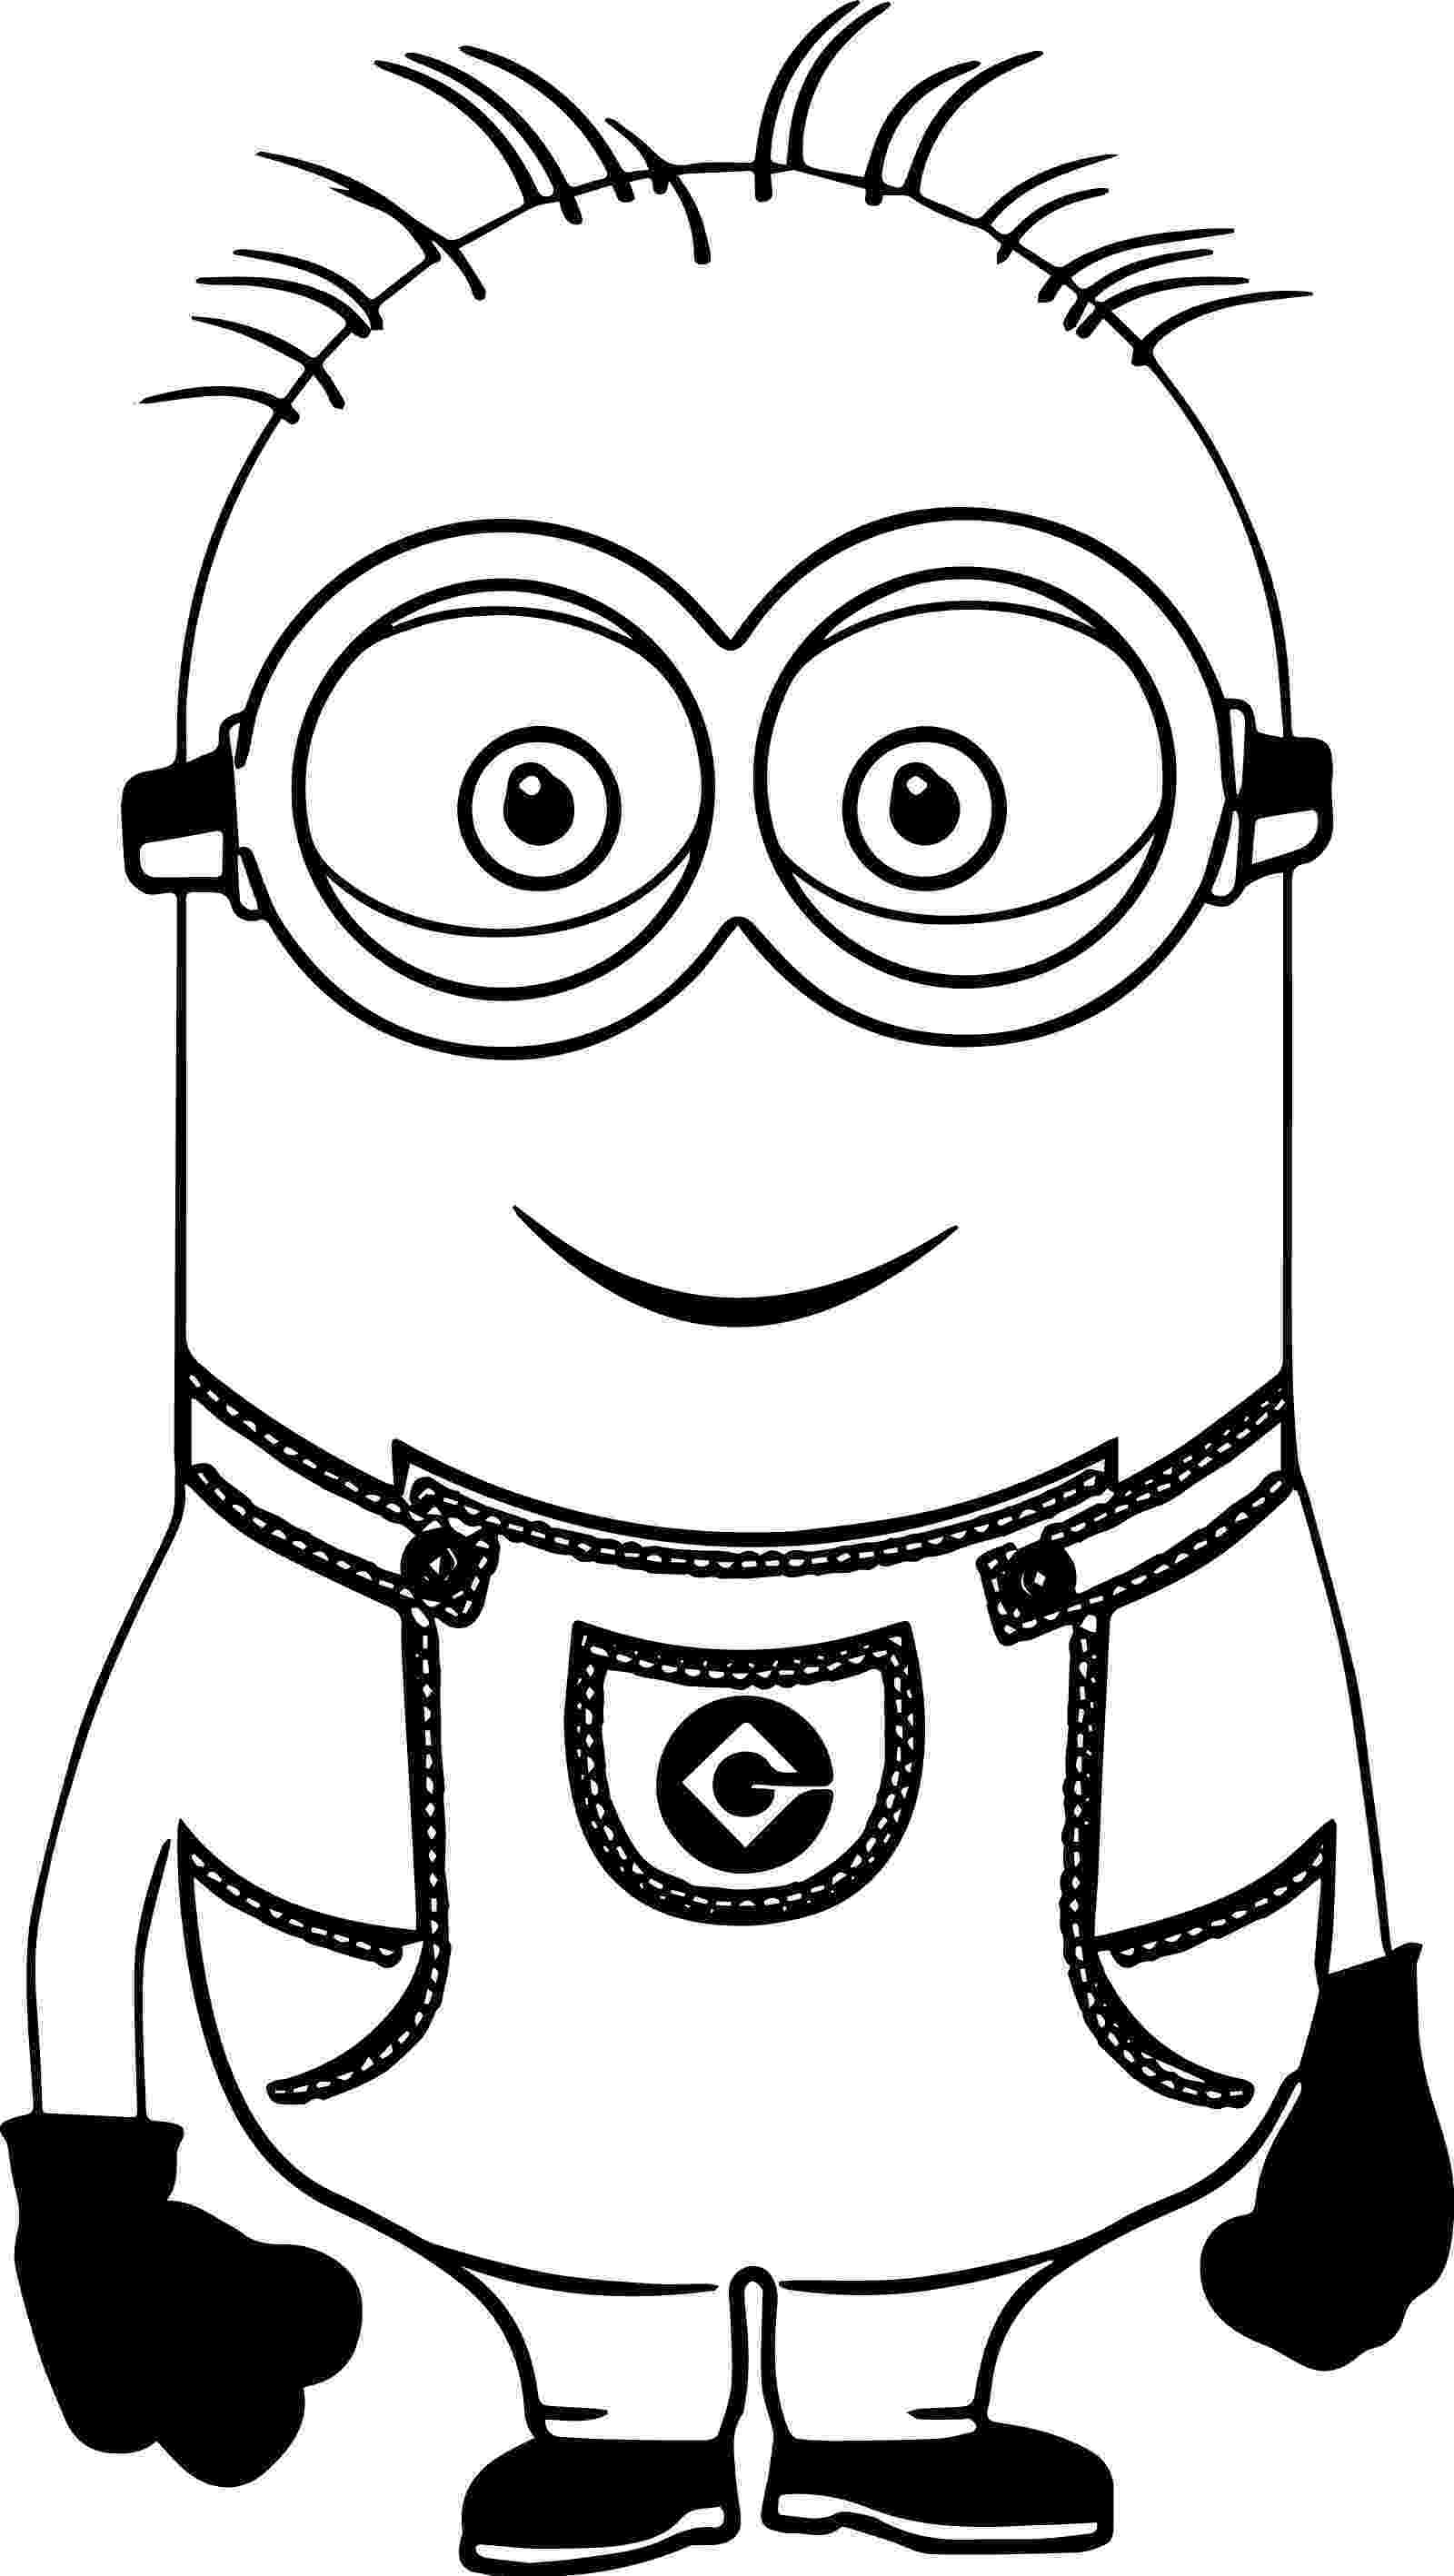 minions black and white cute bob and bear minions coloring page minion coloring black minions white and